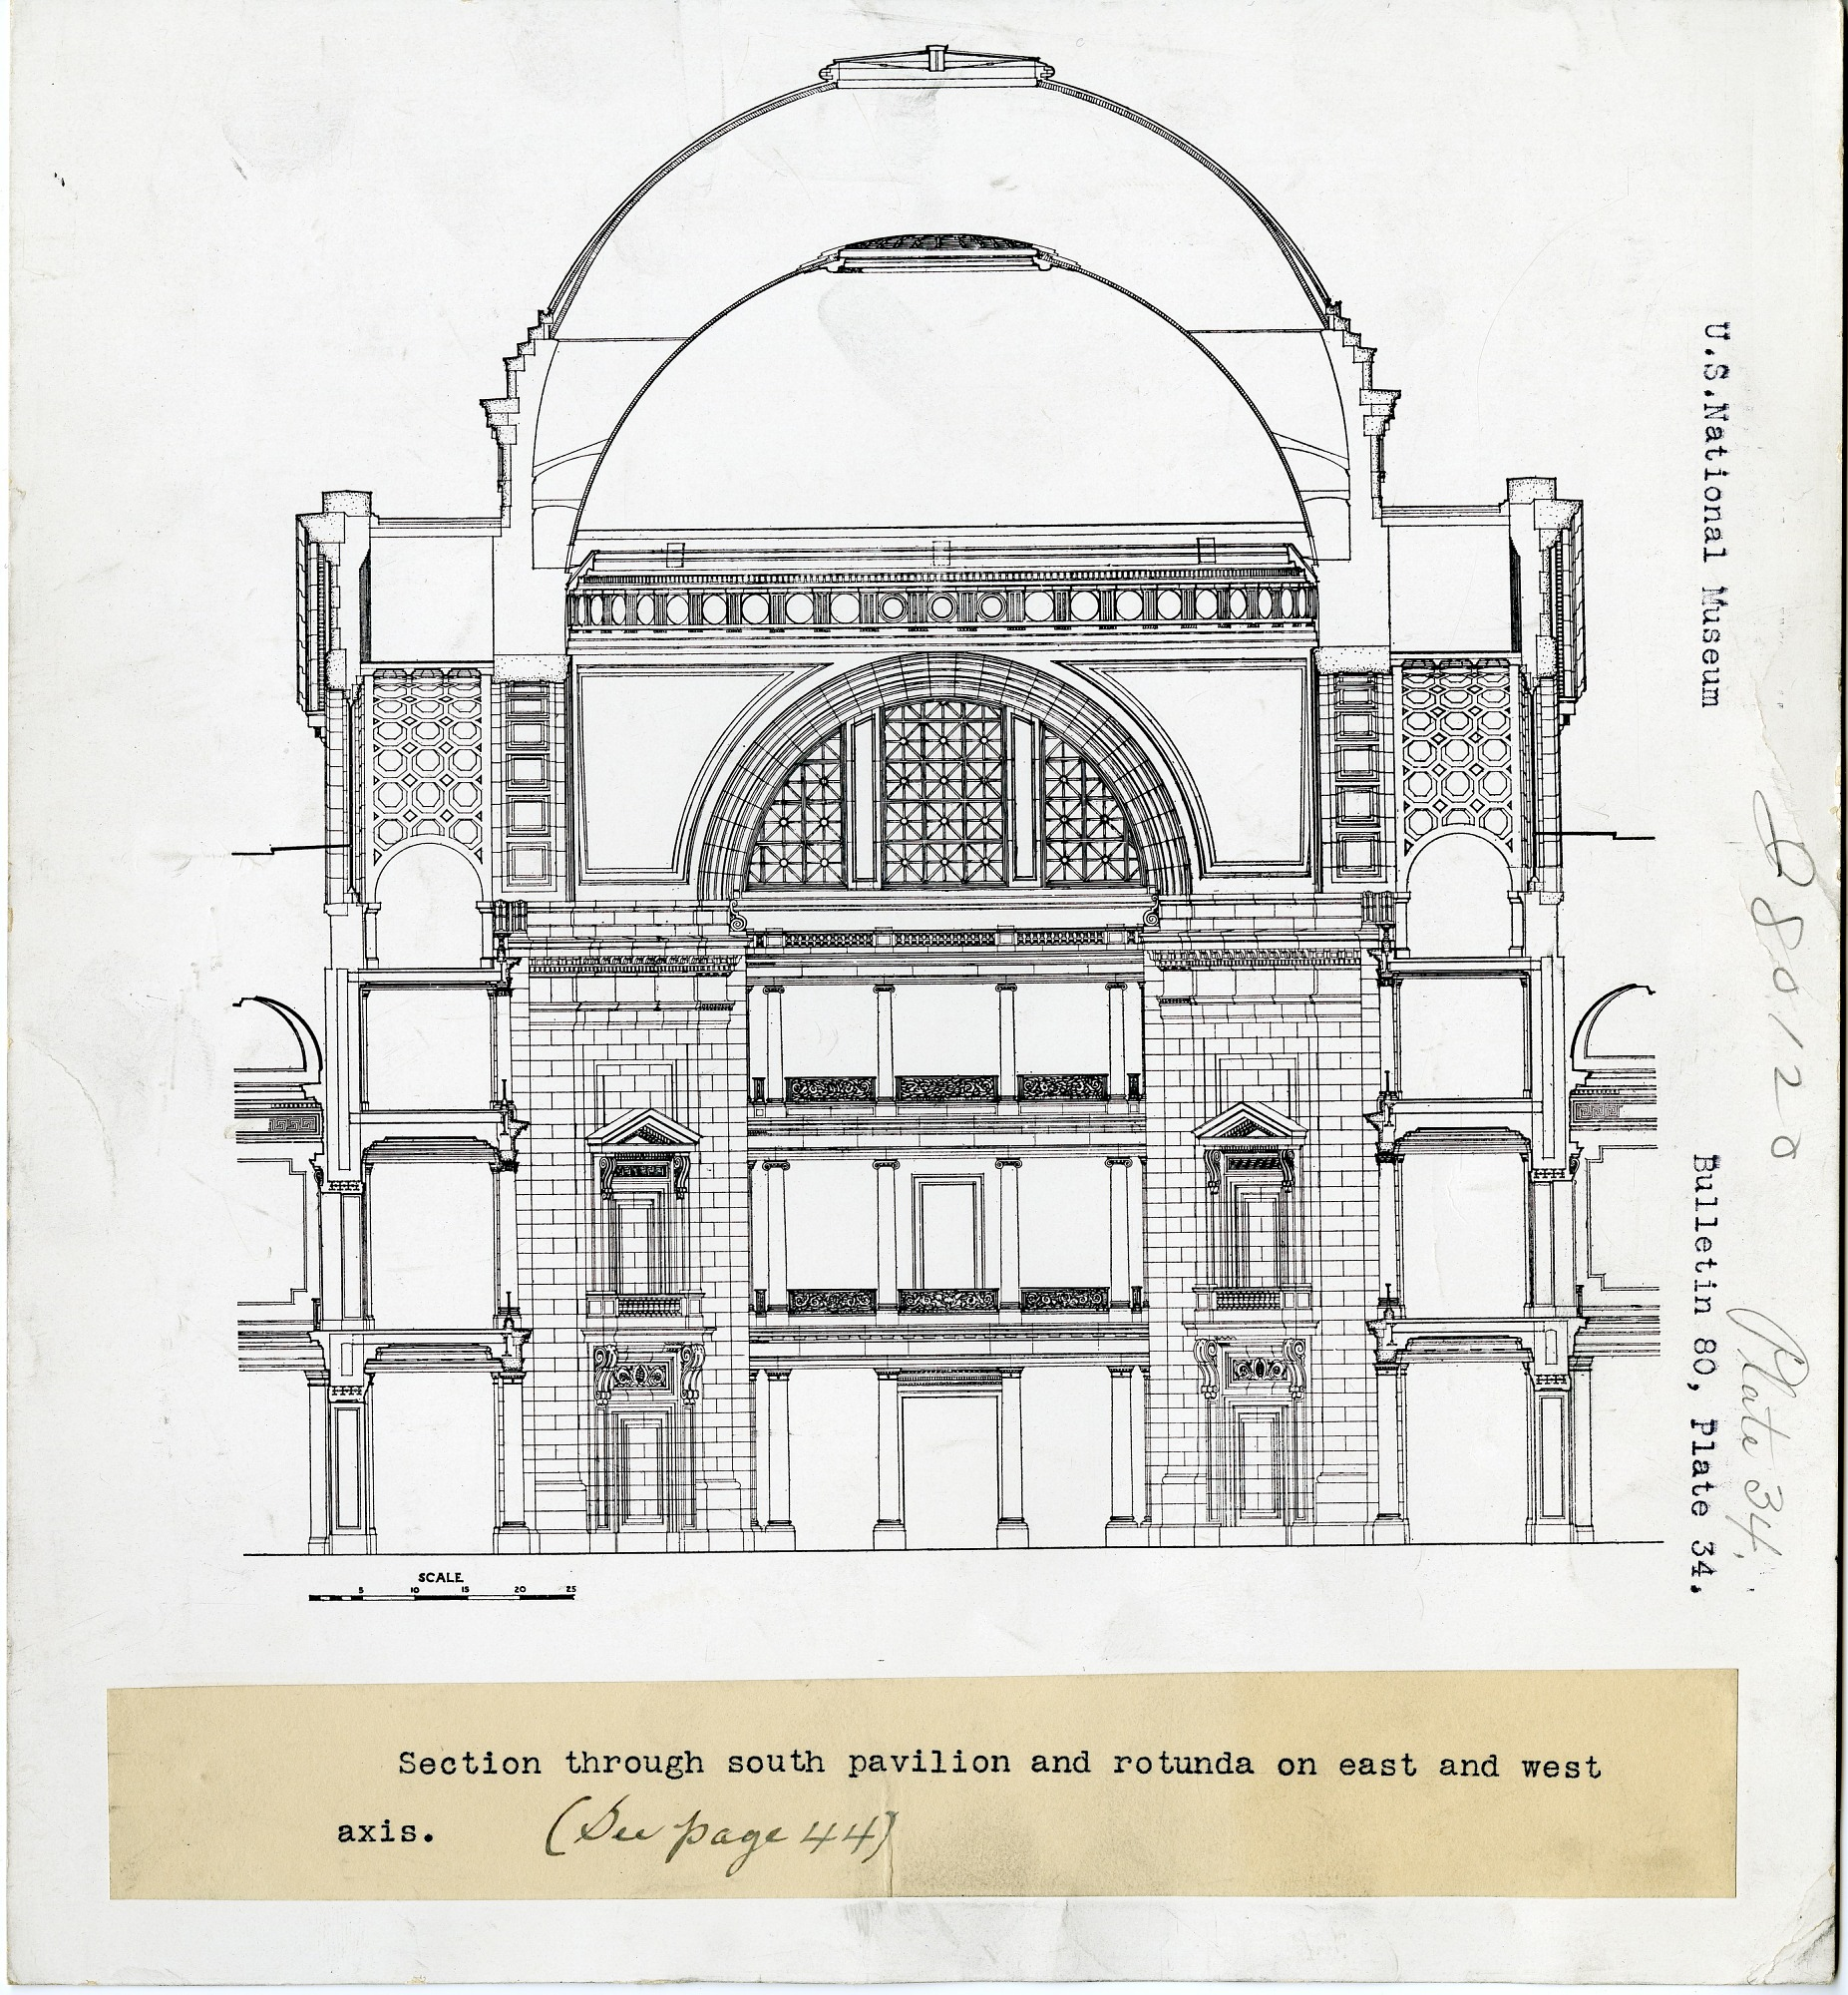 Preview of United States National Museum, Section through South Pavilion and Rotunda